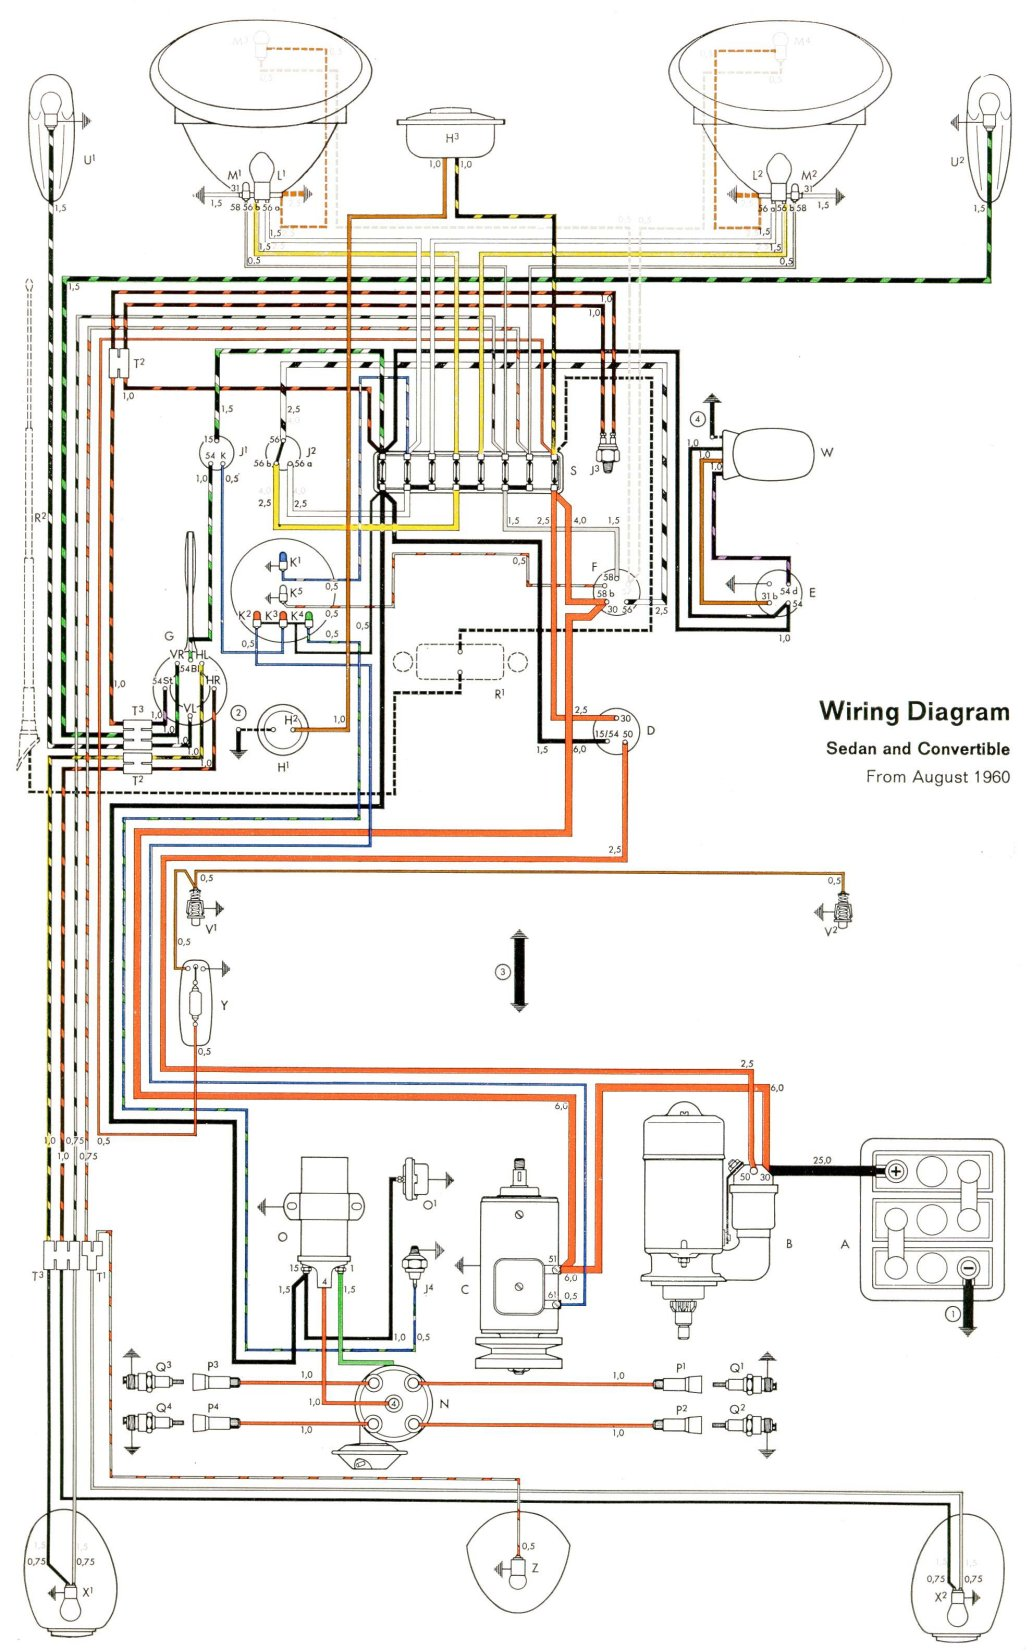 hight resolution of thesamba com type 1 wiring diagrams 1969 amc wiring diagram 1969 vw wiring diagram